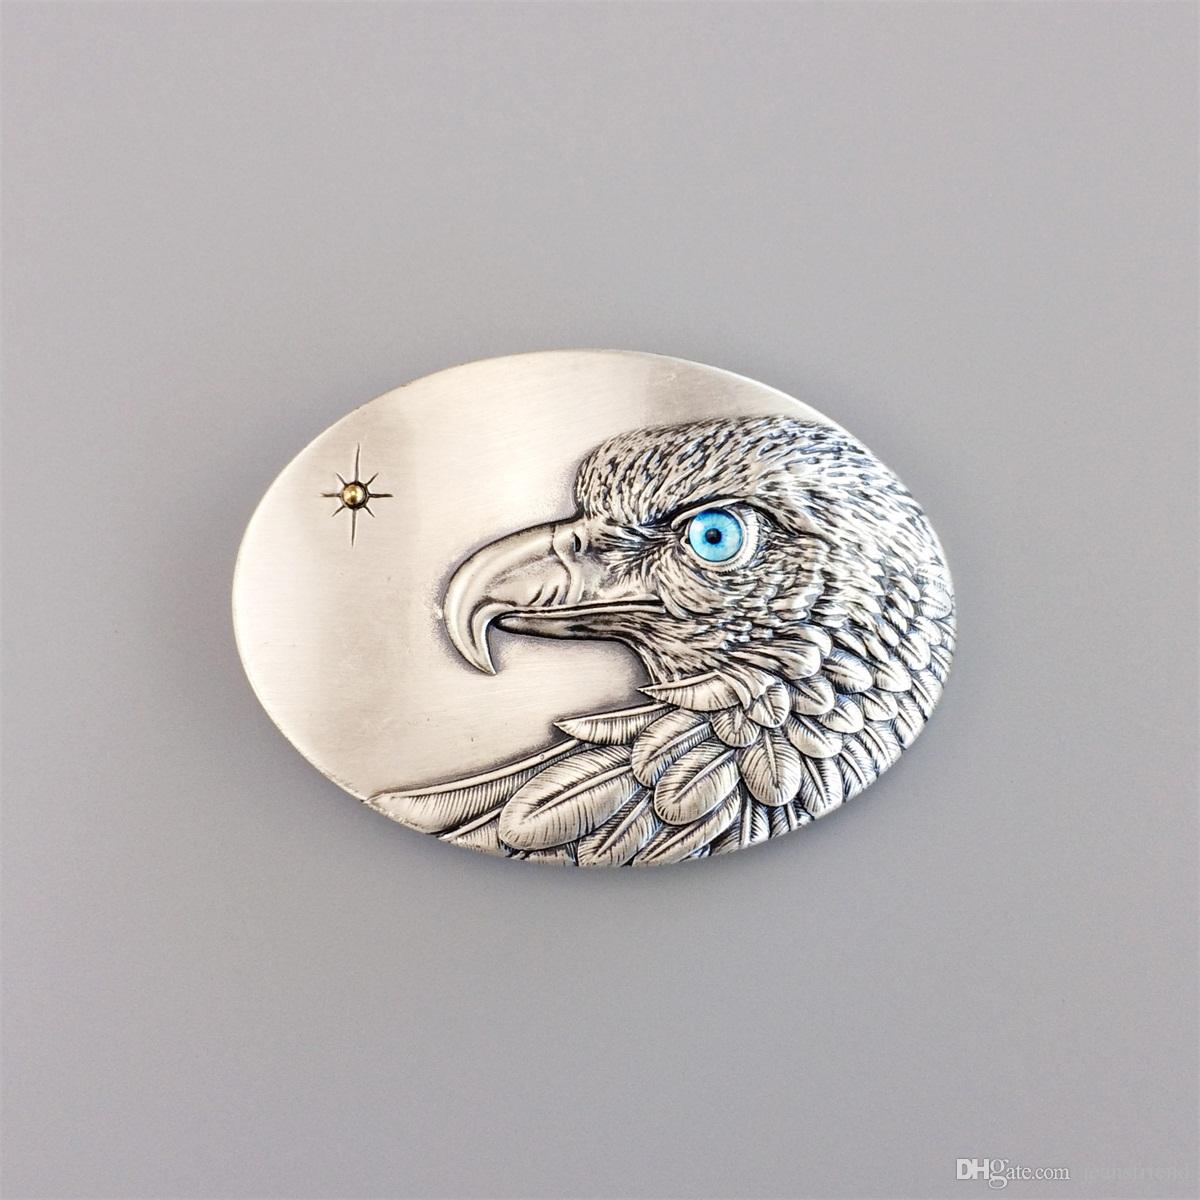 Men Belt Buckle Original Vintage Silver Plated Oval Sun Eagle Blue Eye Belt Buckle Gurtelschnalle Boucle de ceinture BUCKLE-WT149SL-BL